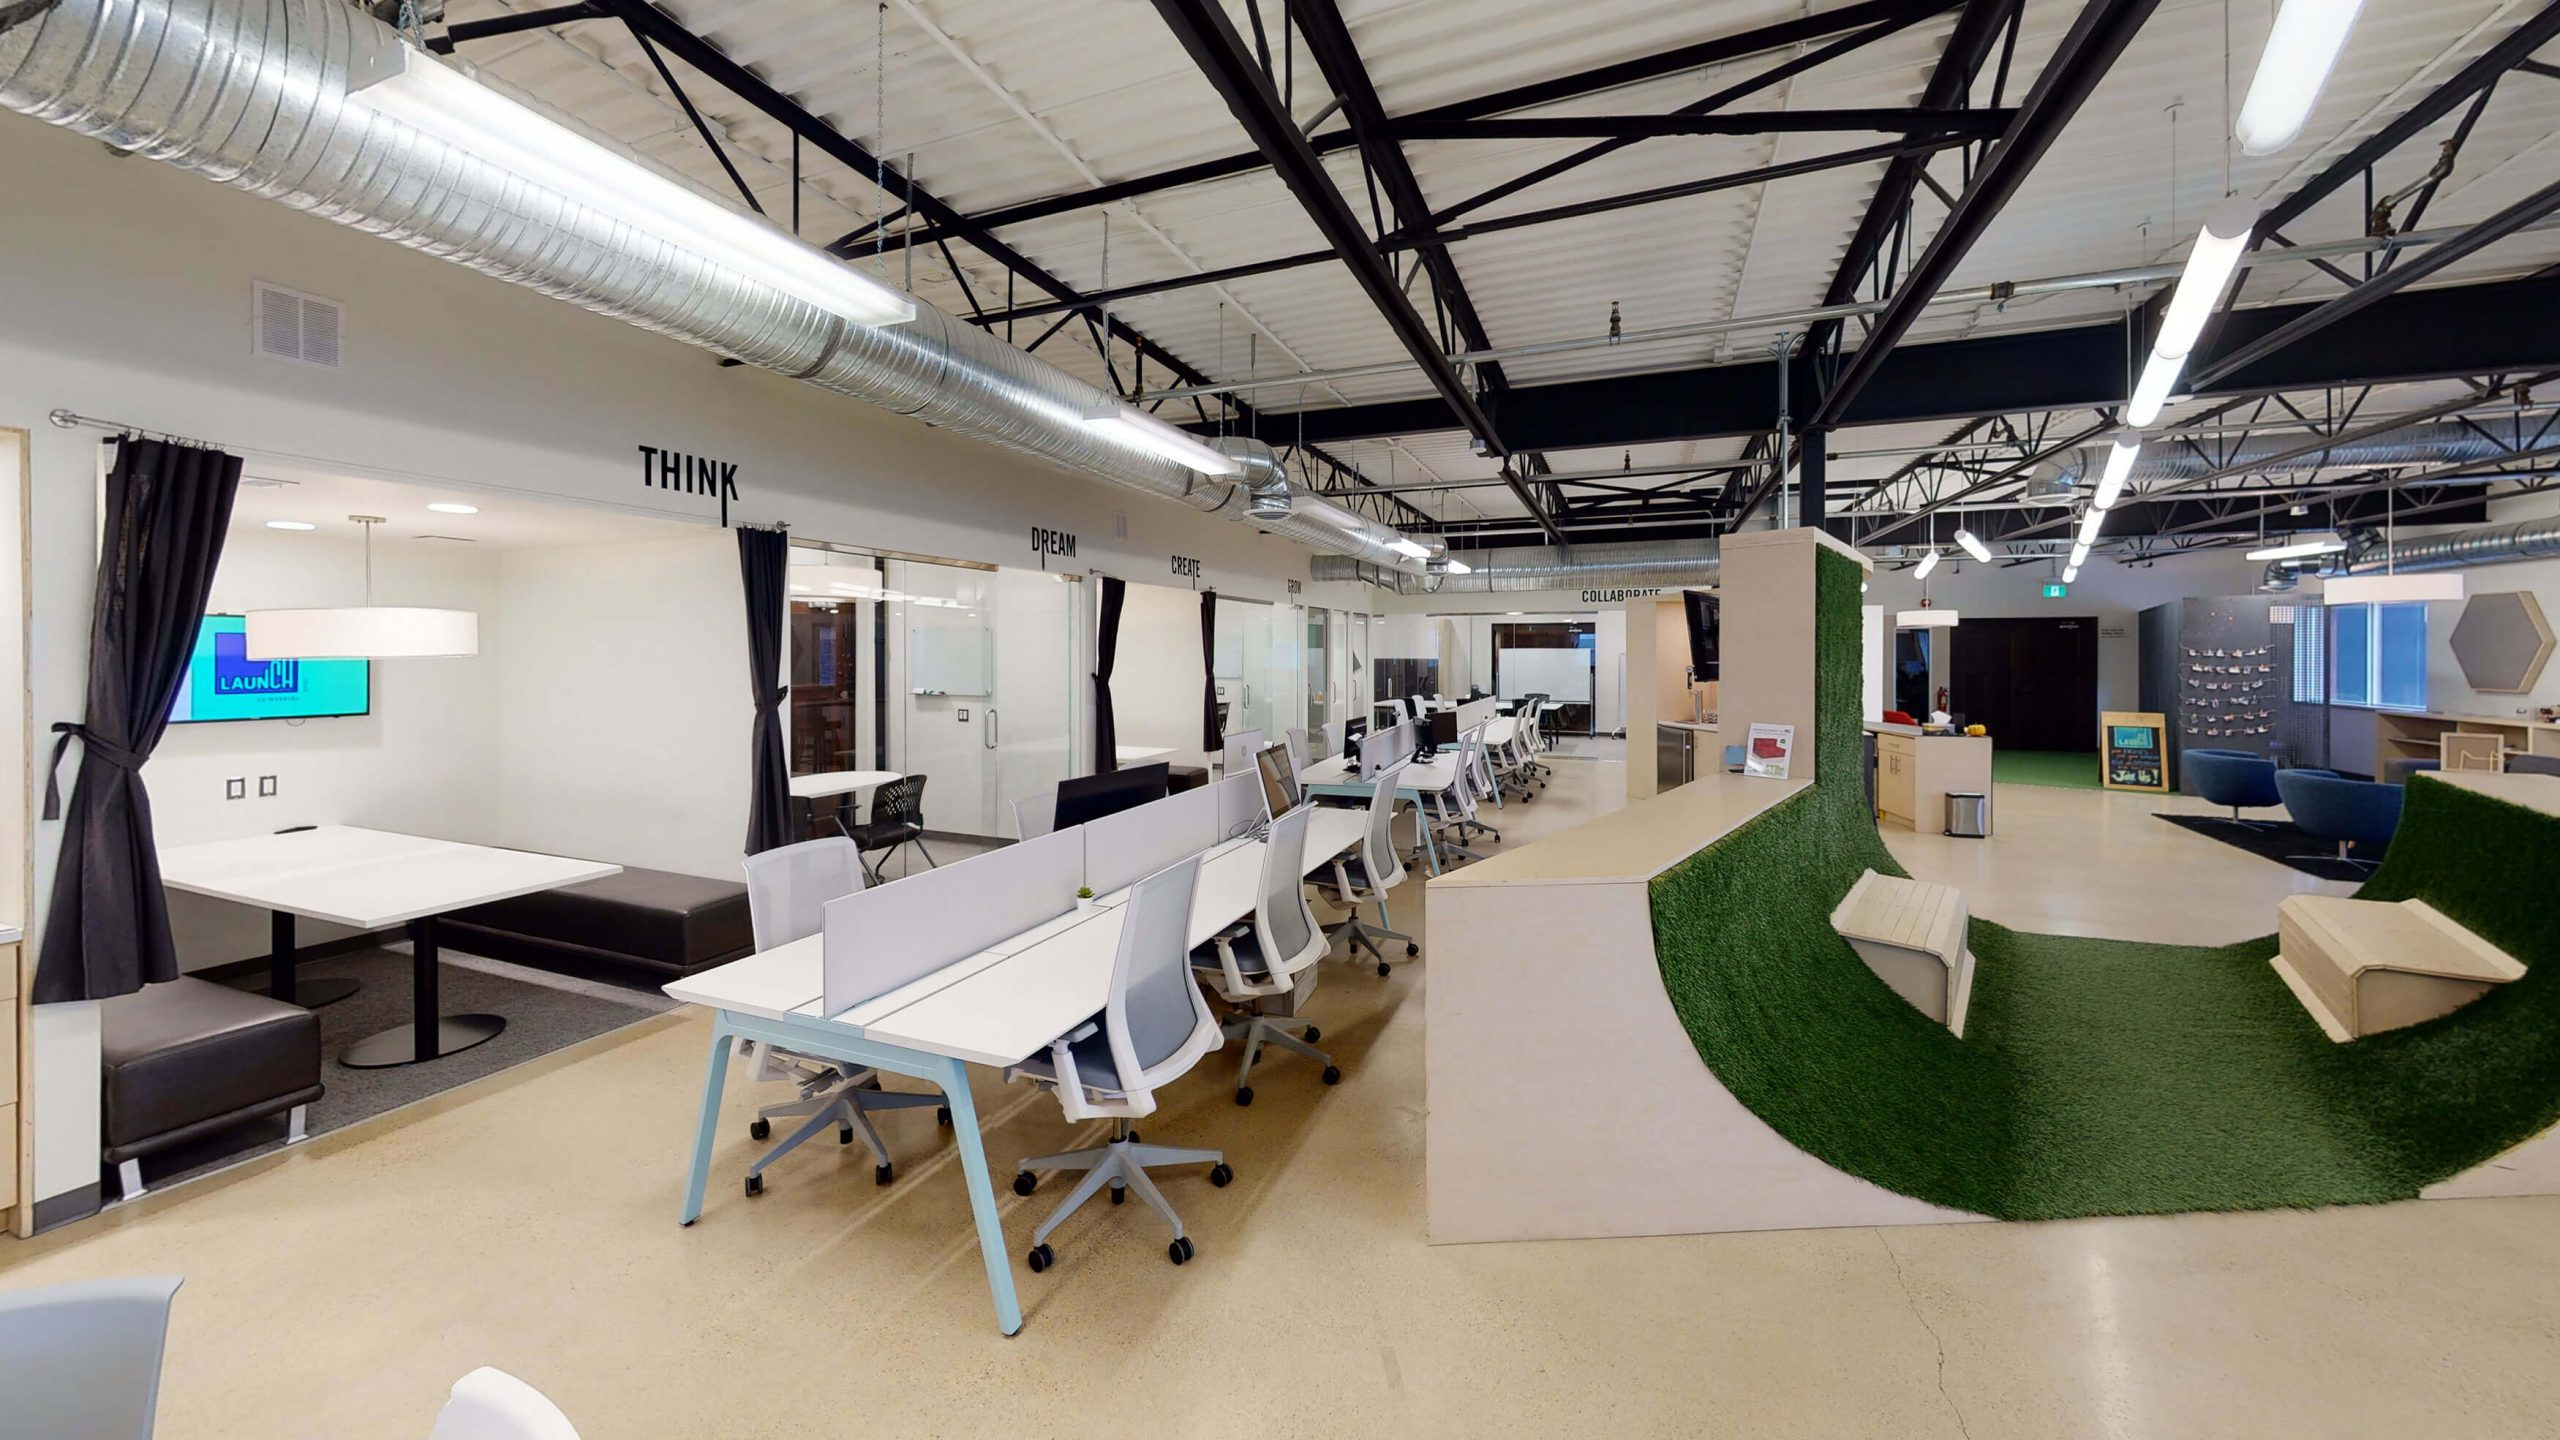 Virtually staged modern office interior with plants